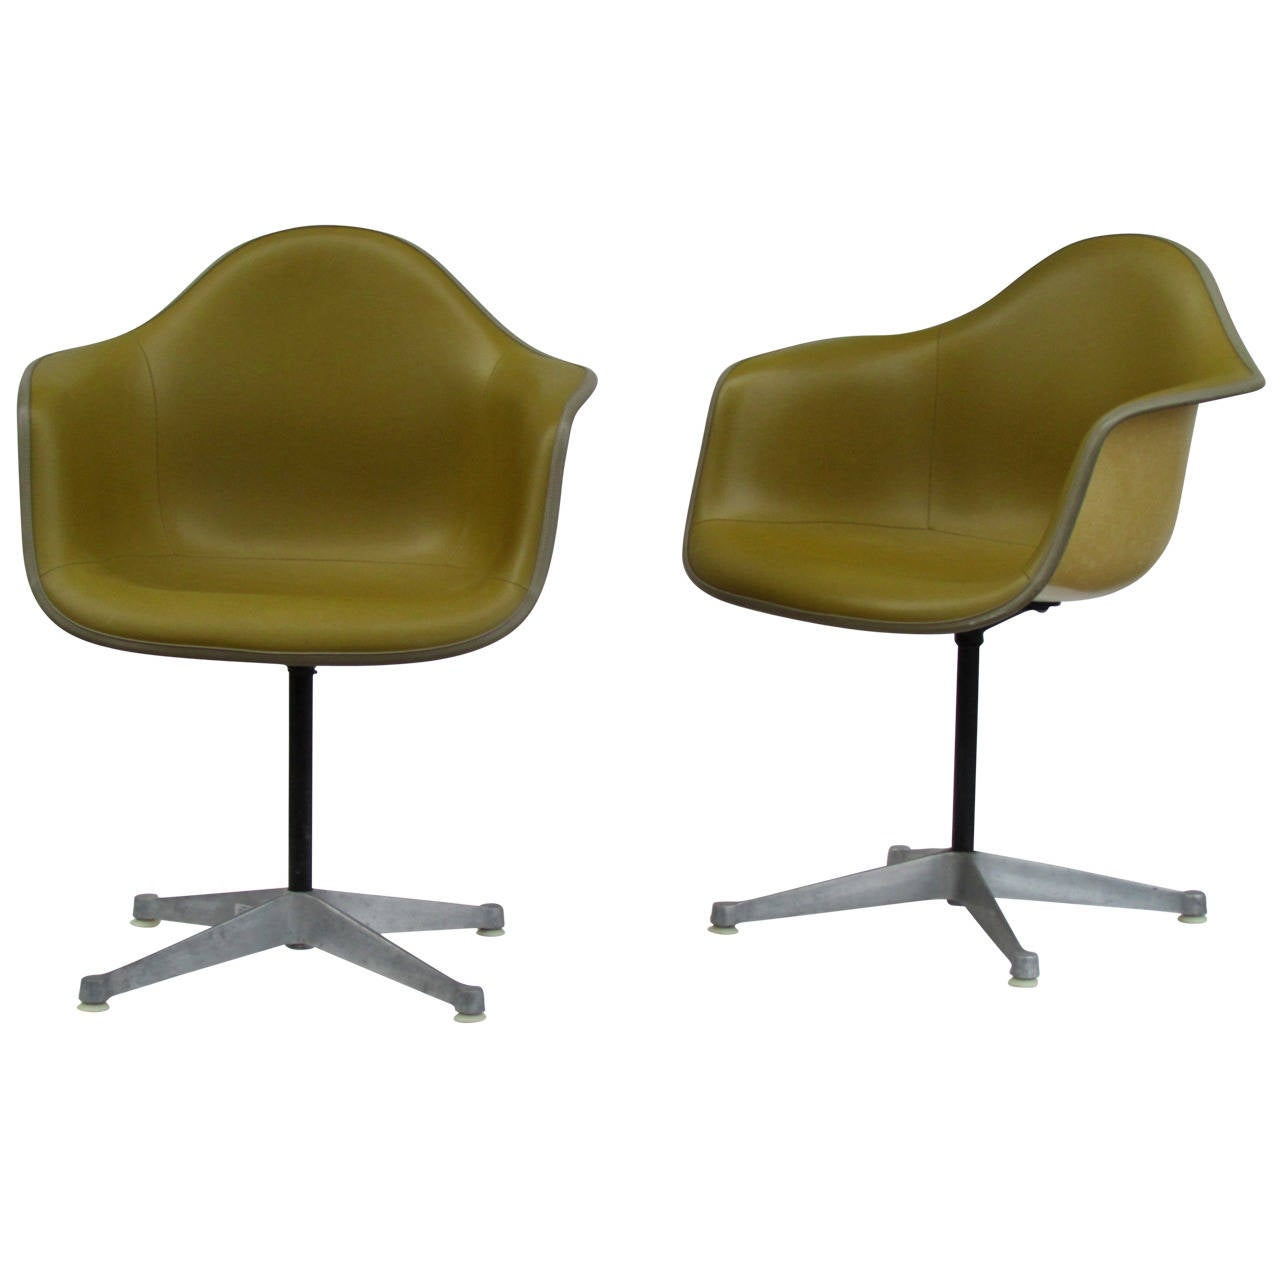 eames bucket chair chairs for bad lower back swivel in alexander girard olive